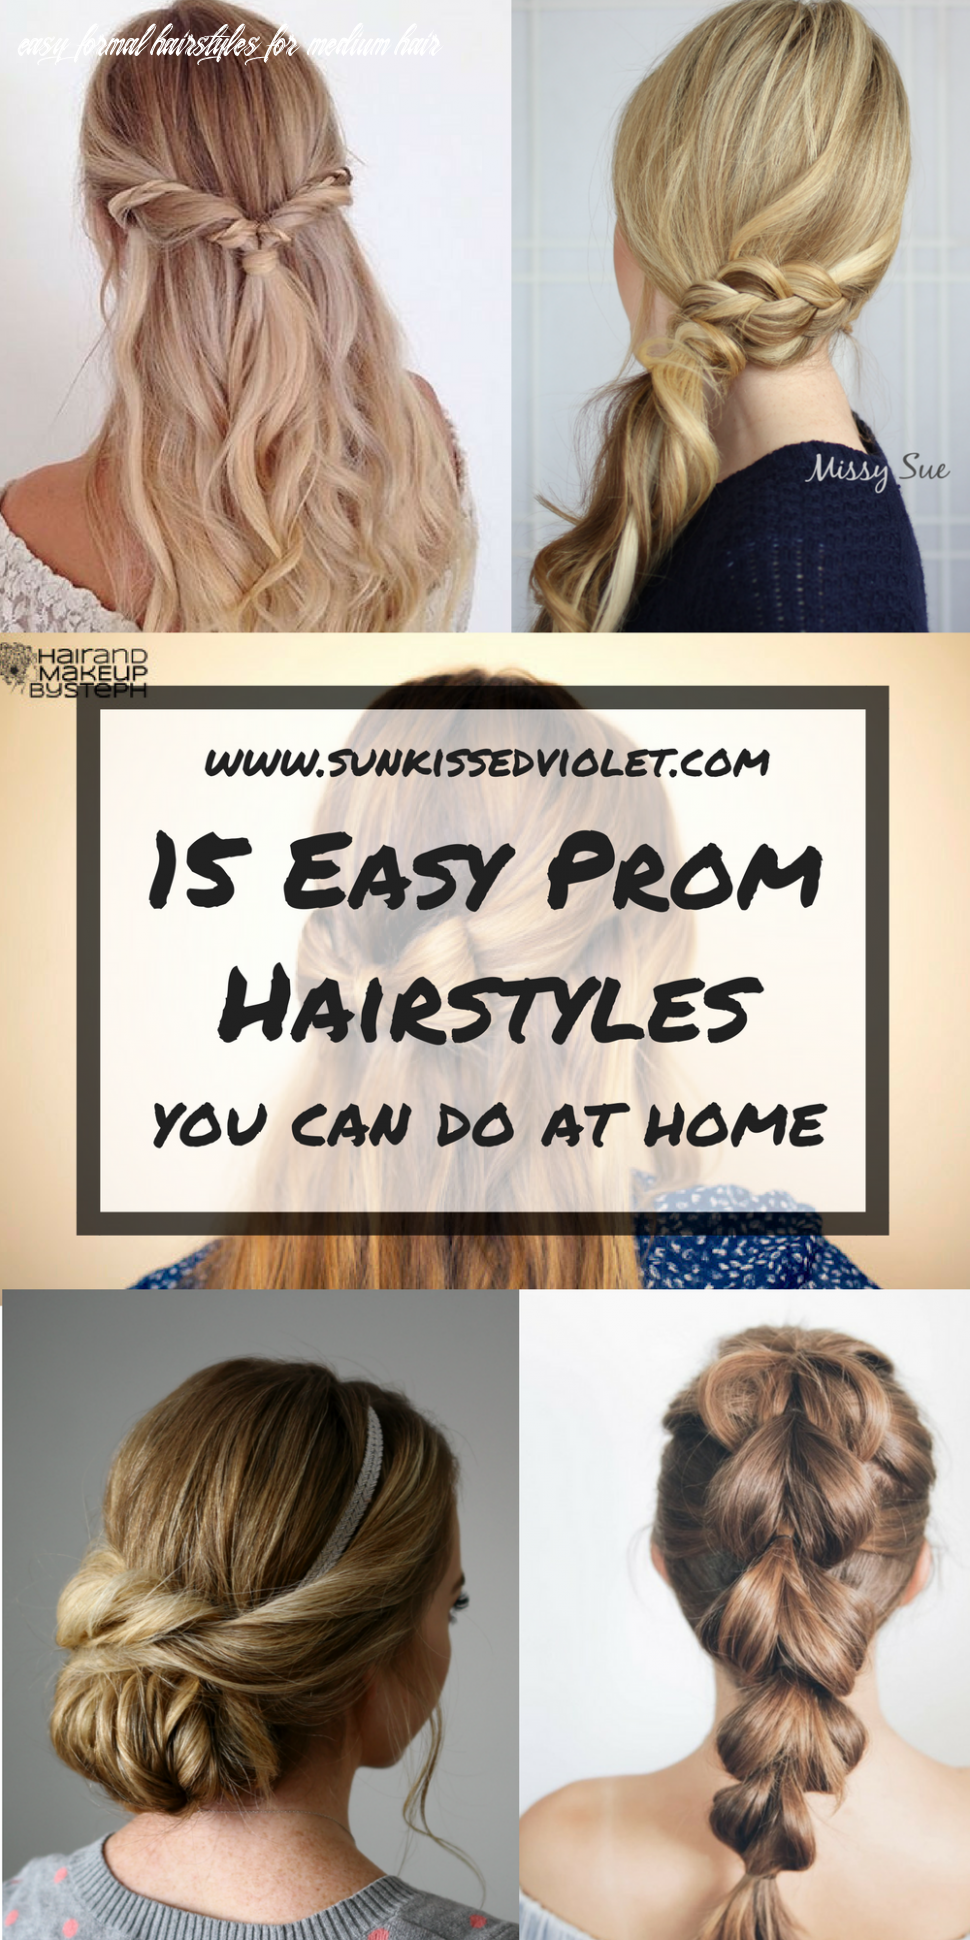 8 easy prom hairstyles for long hair you can diy at home | hair